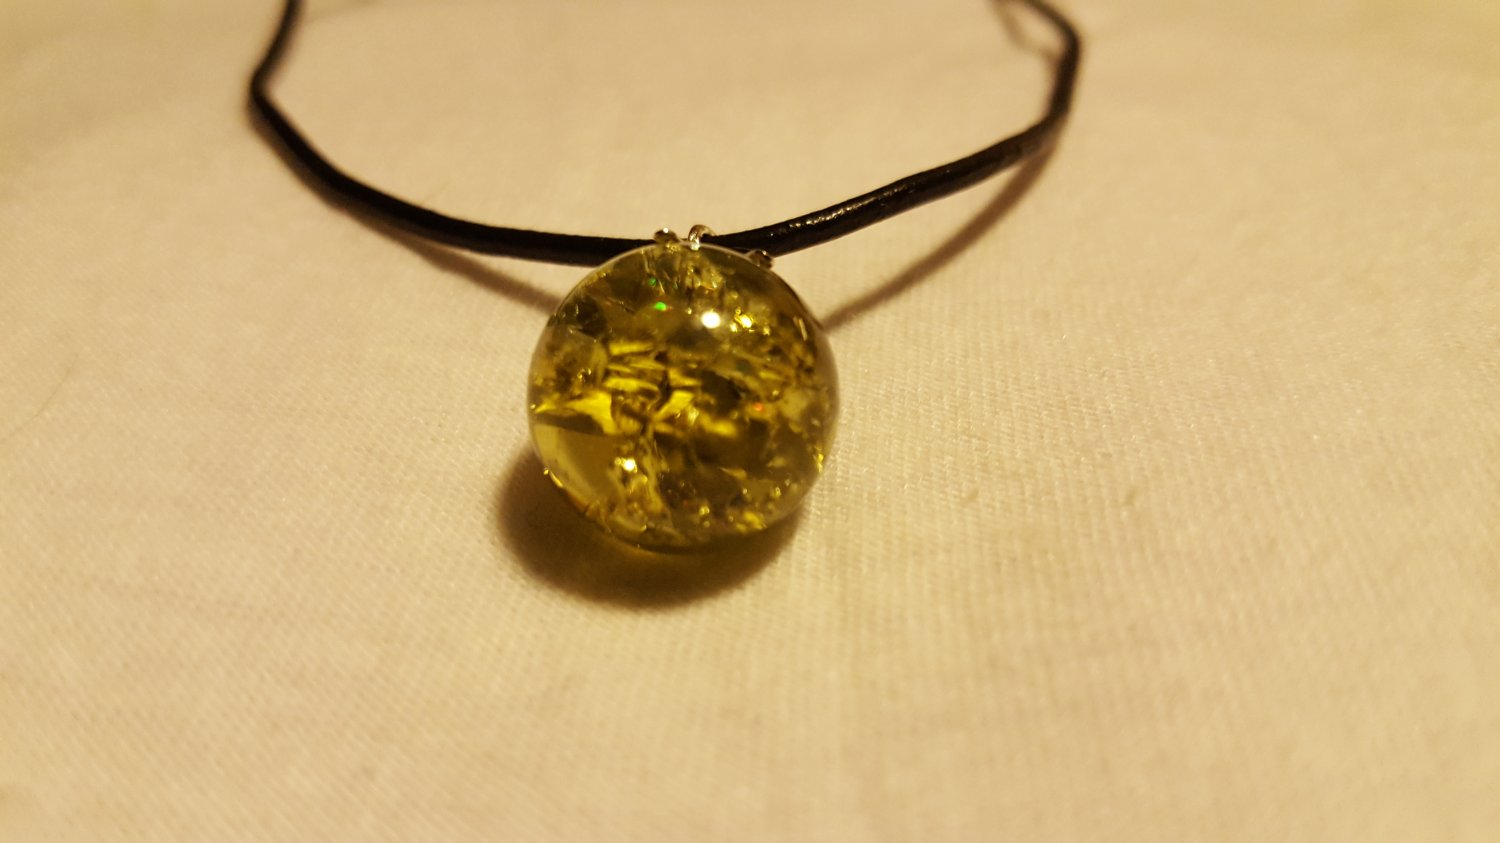 Yellow Cracked Marble on Leather Cord